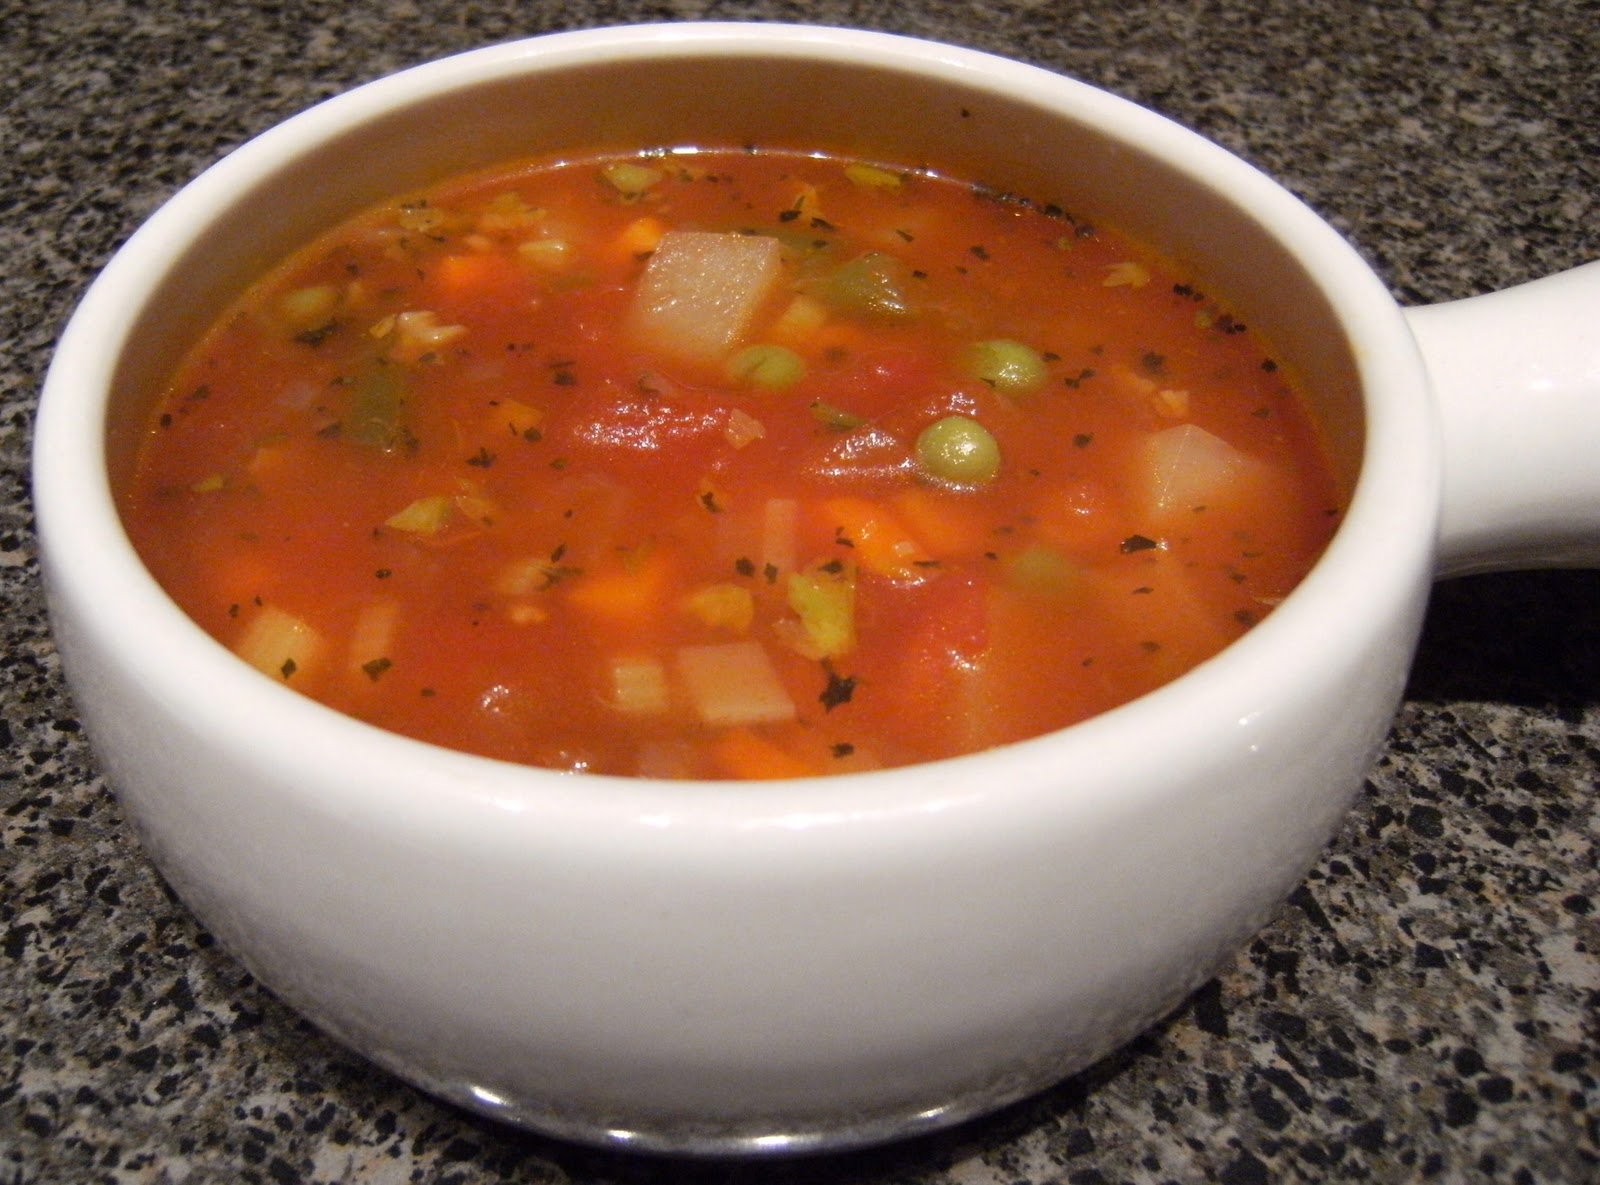 Queen of the Easy Meal: Easy Vegetable Soup